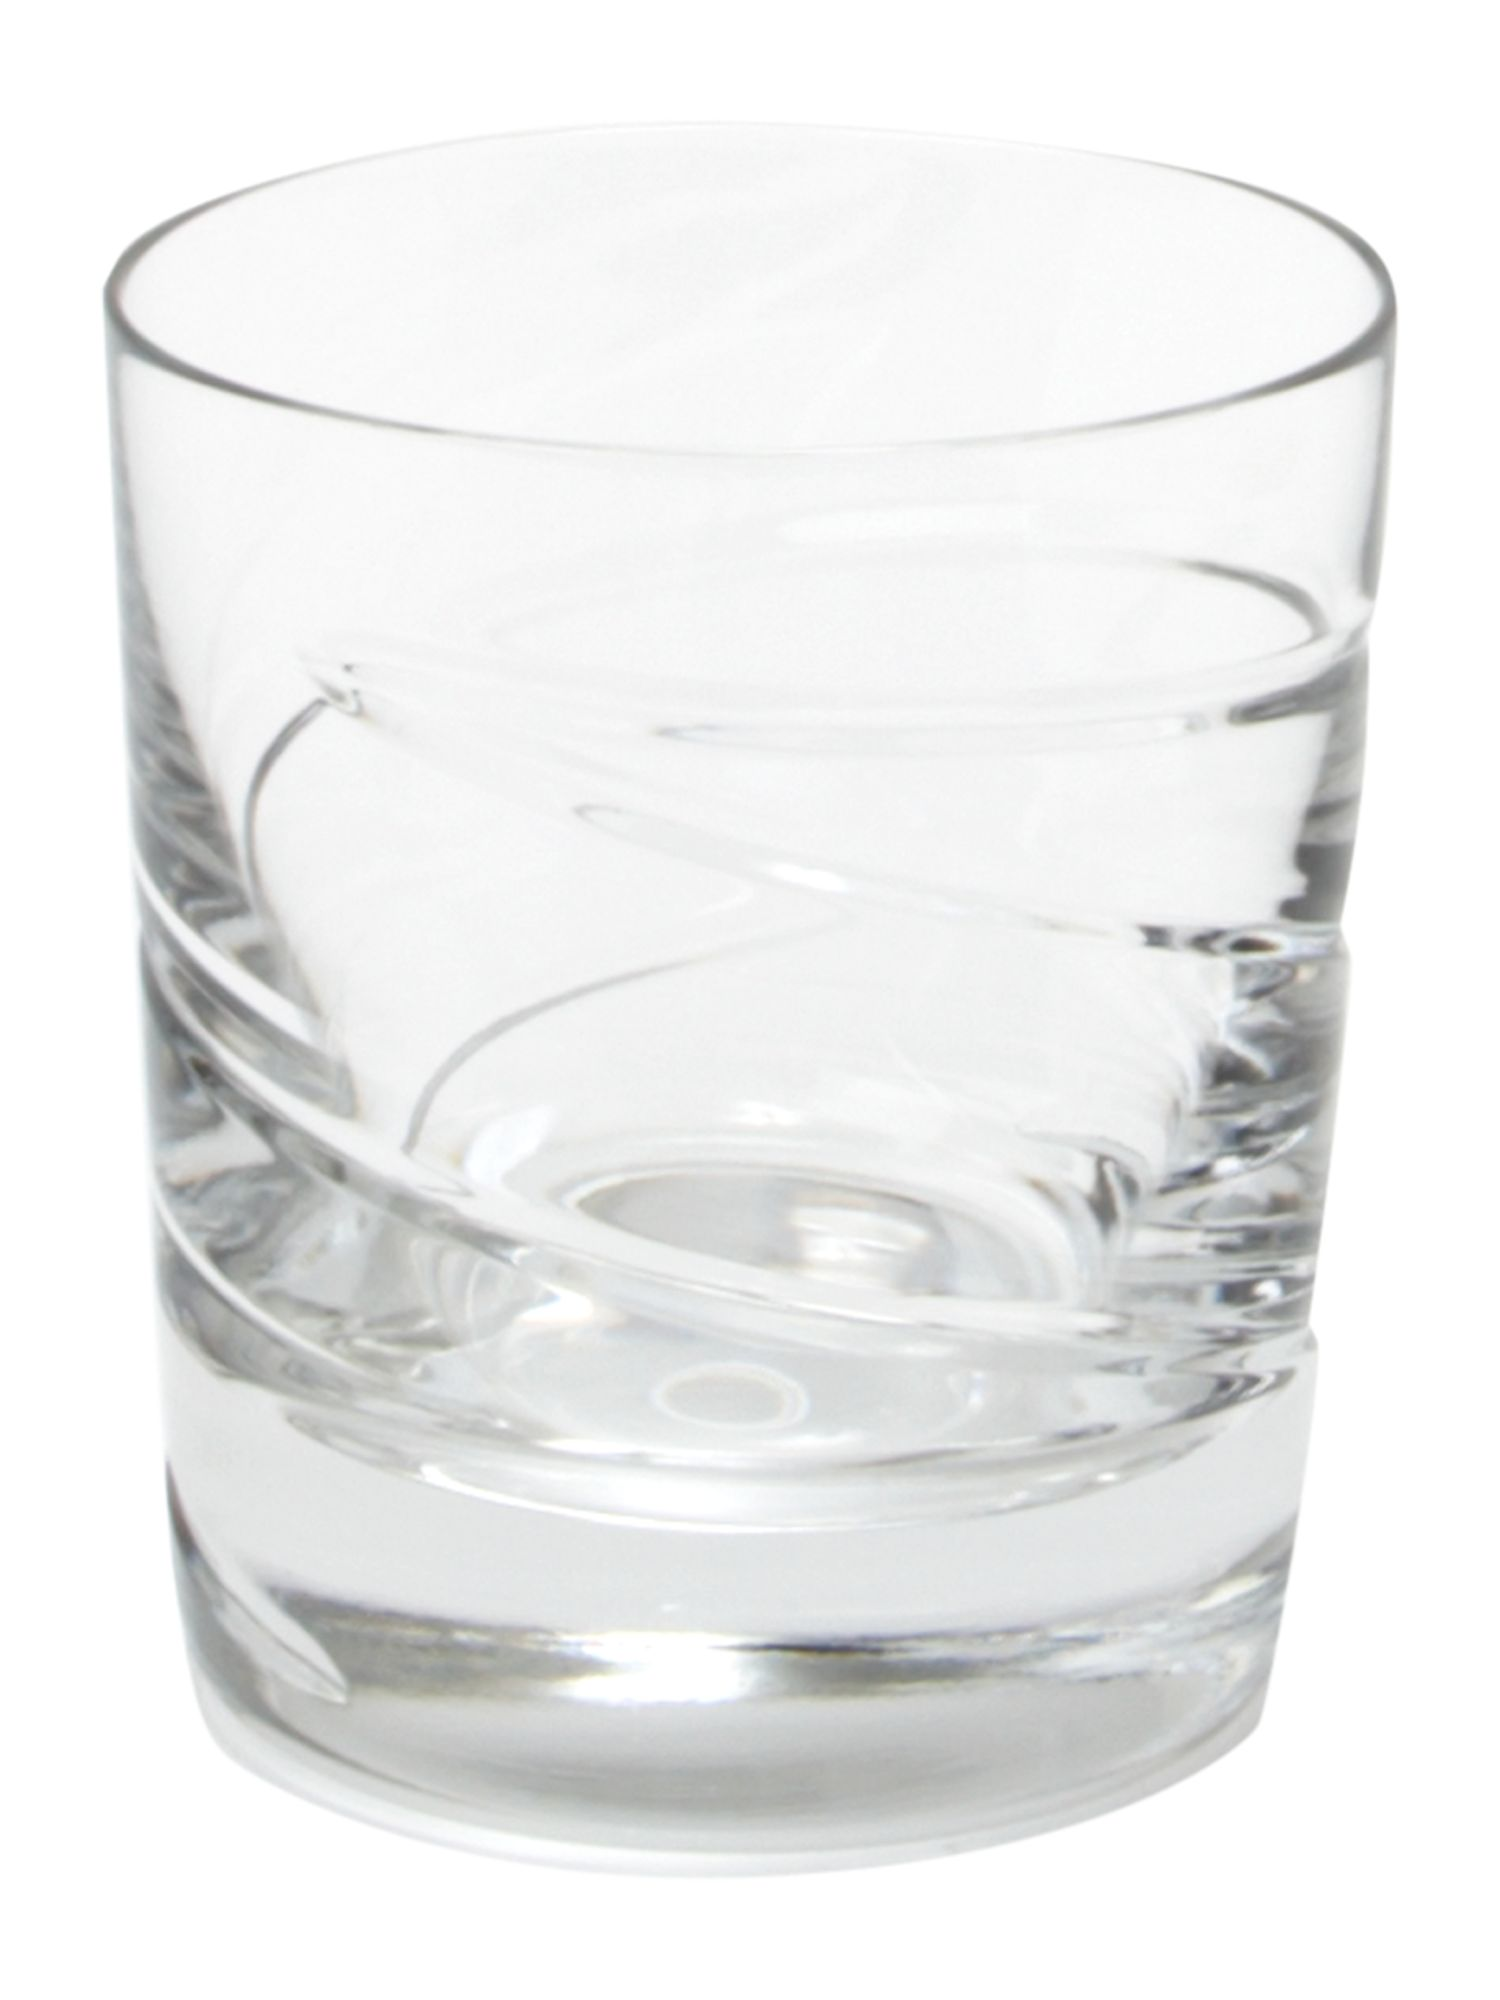 Sierra tumblers, set of 4